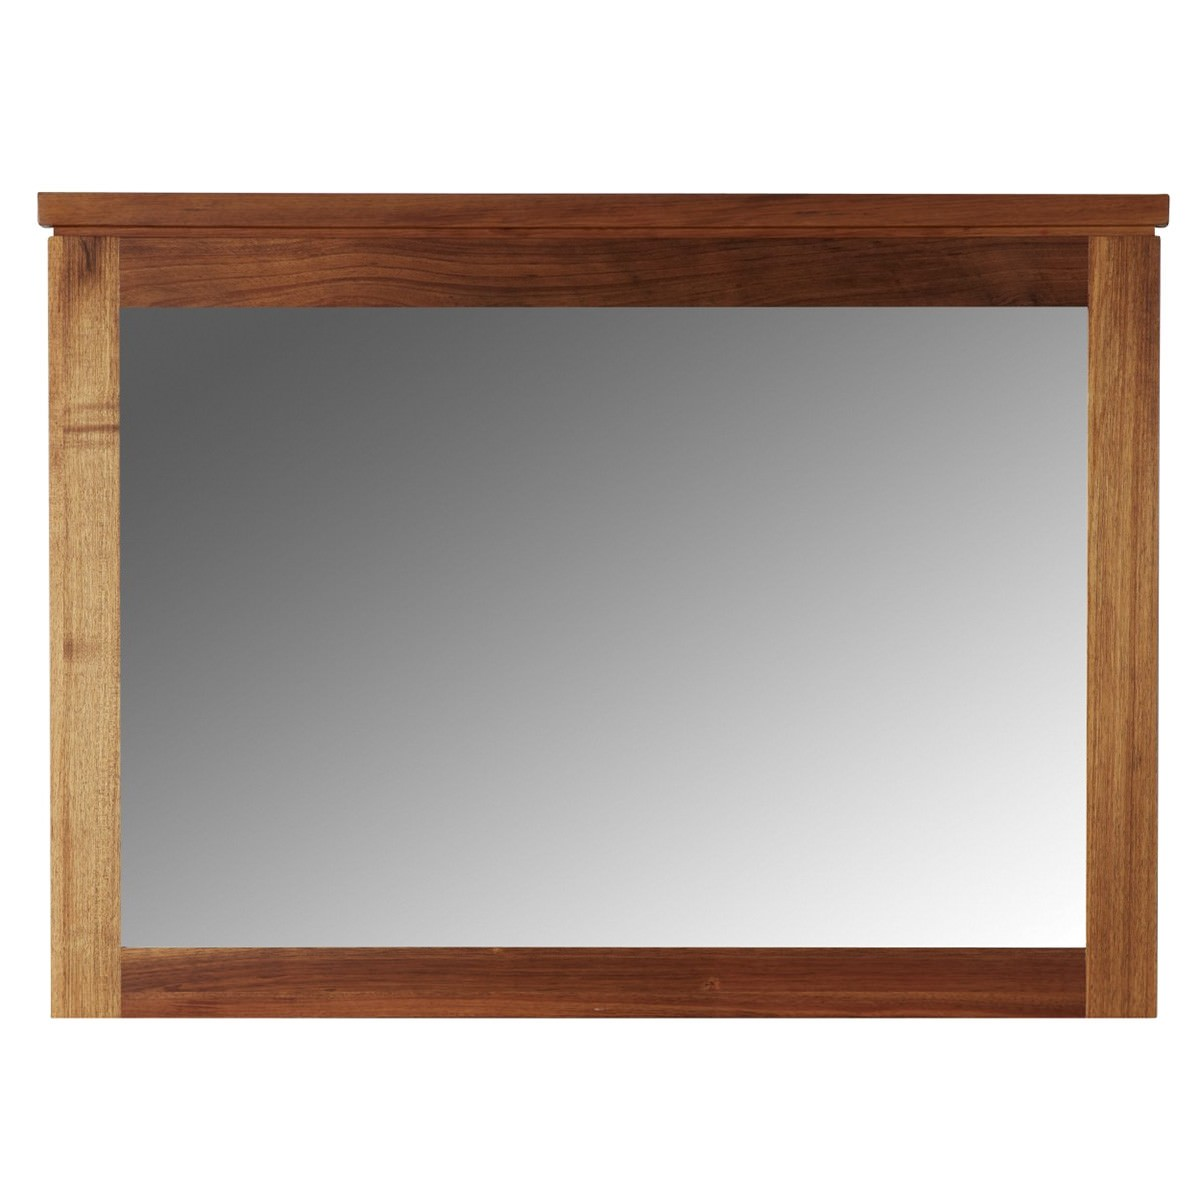 Clifton Blackwood Timber Frame Dressing Mirror, 110cm